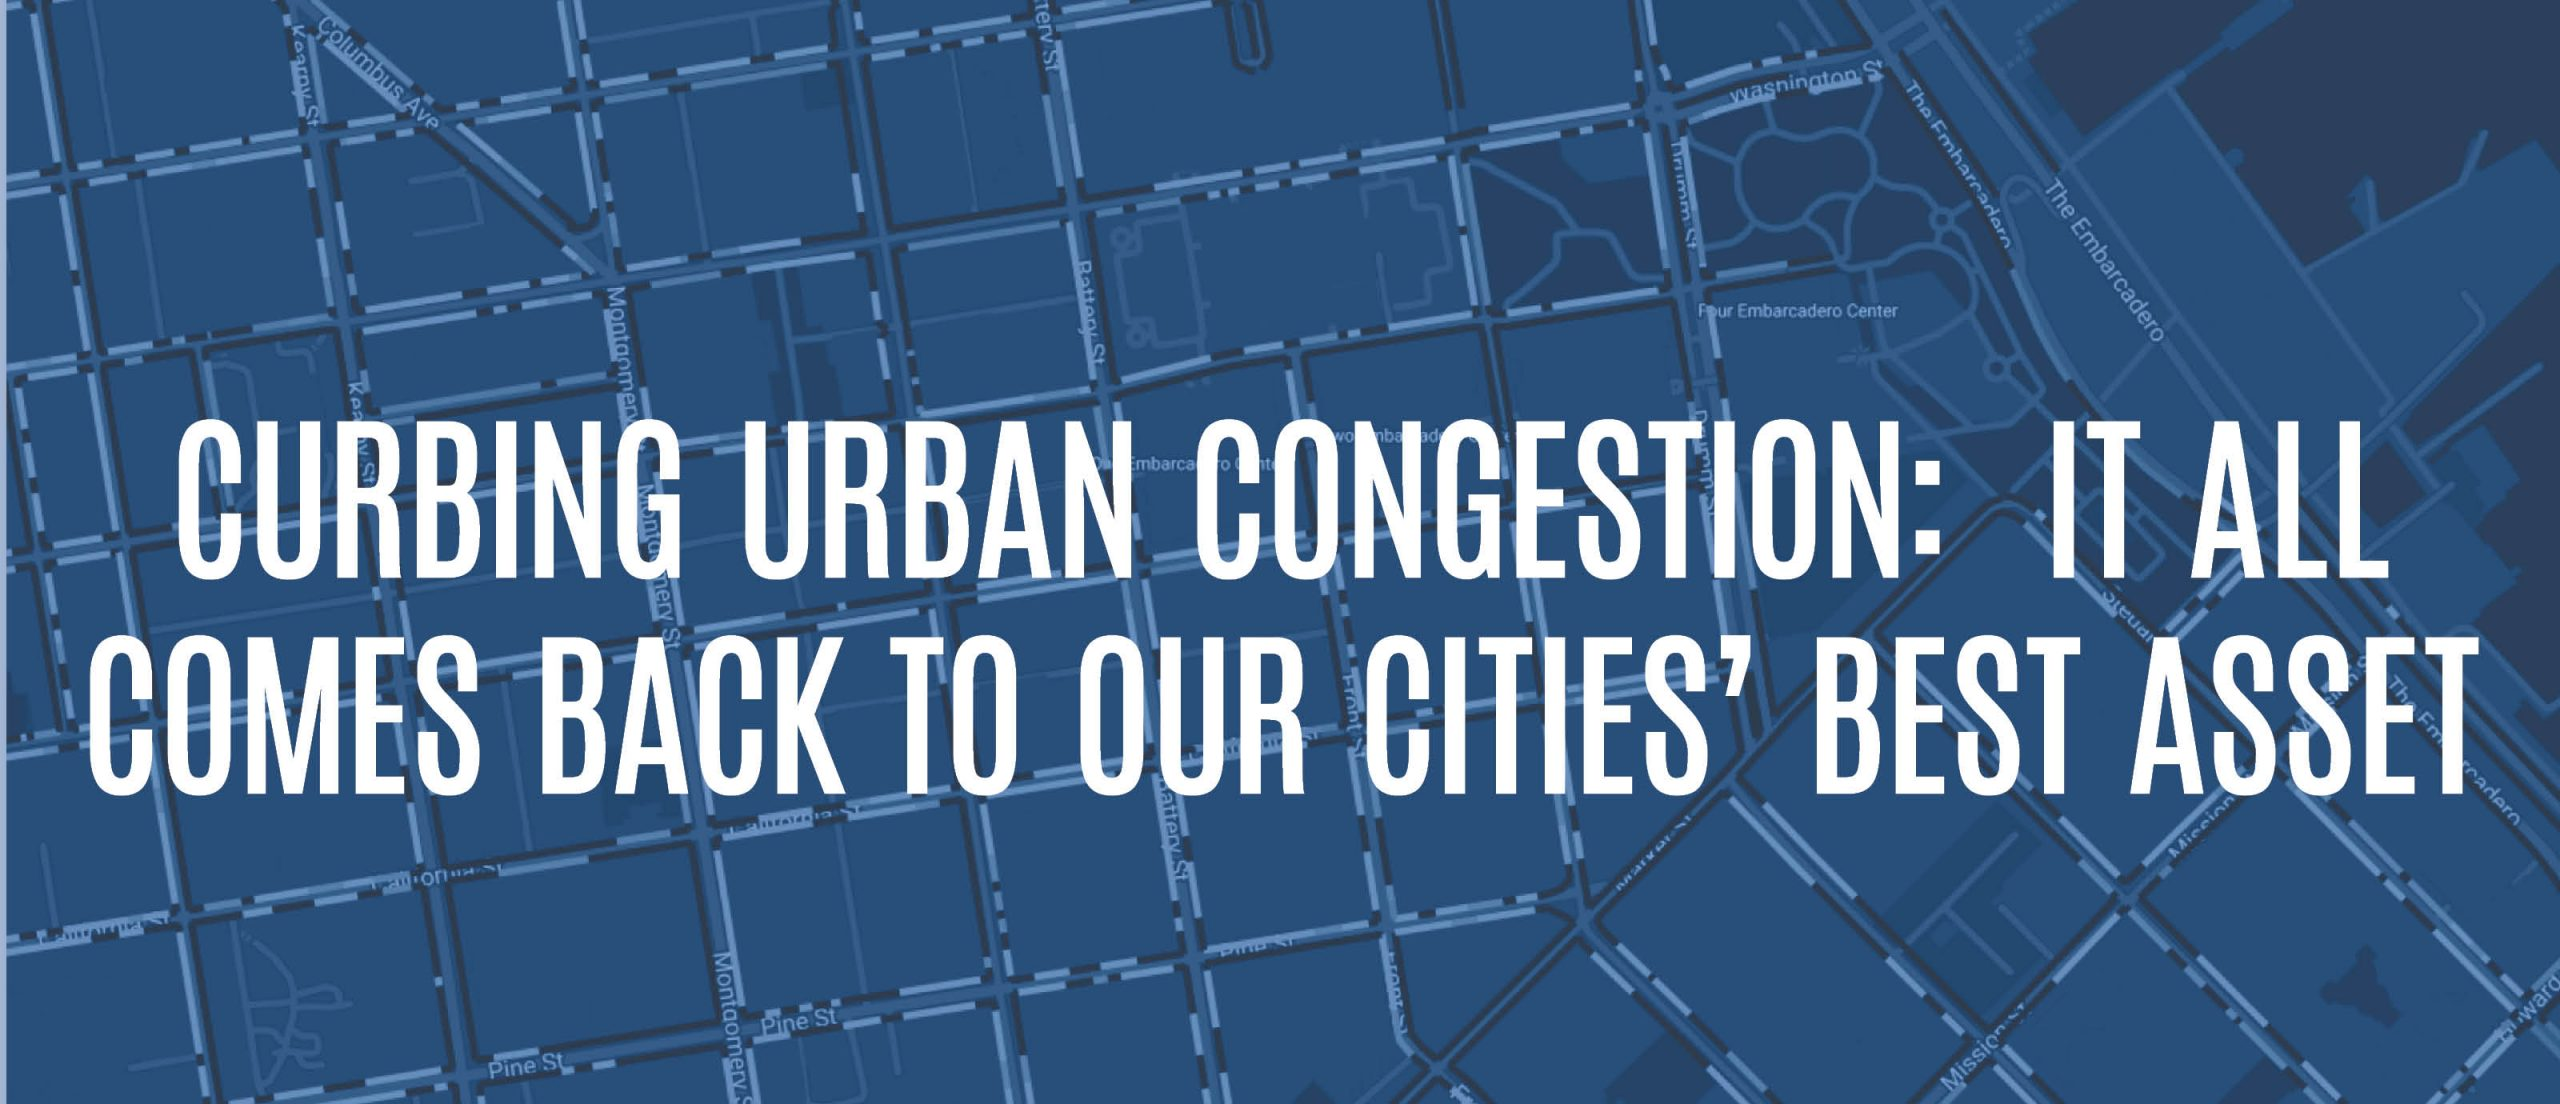 Blog Title - Curbing Urban Congestion: It all comes back to our cities' best asset